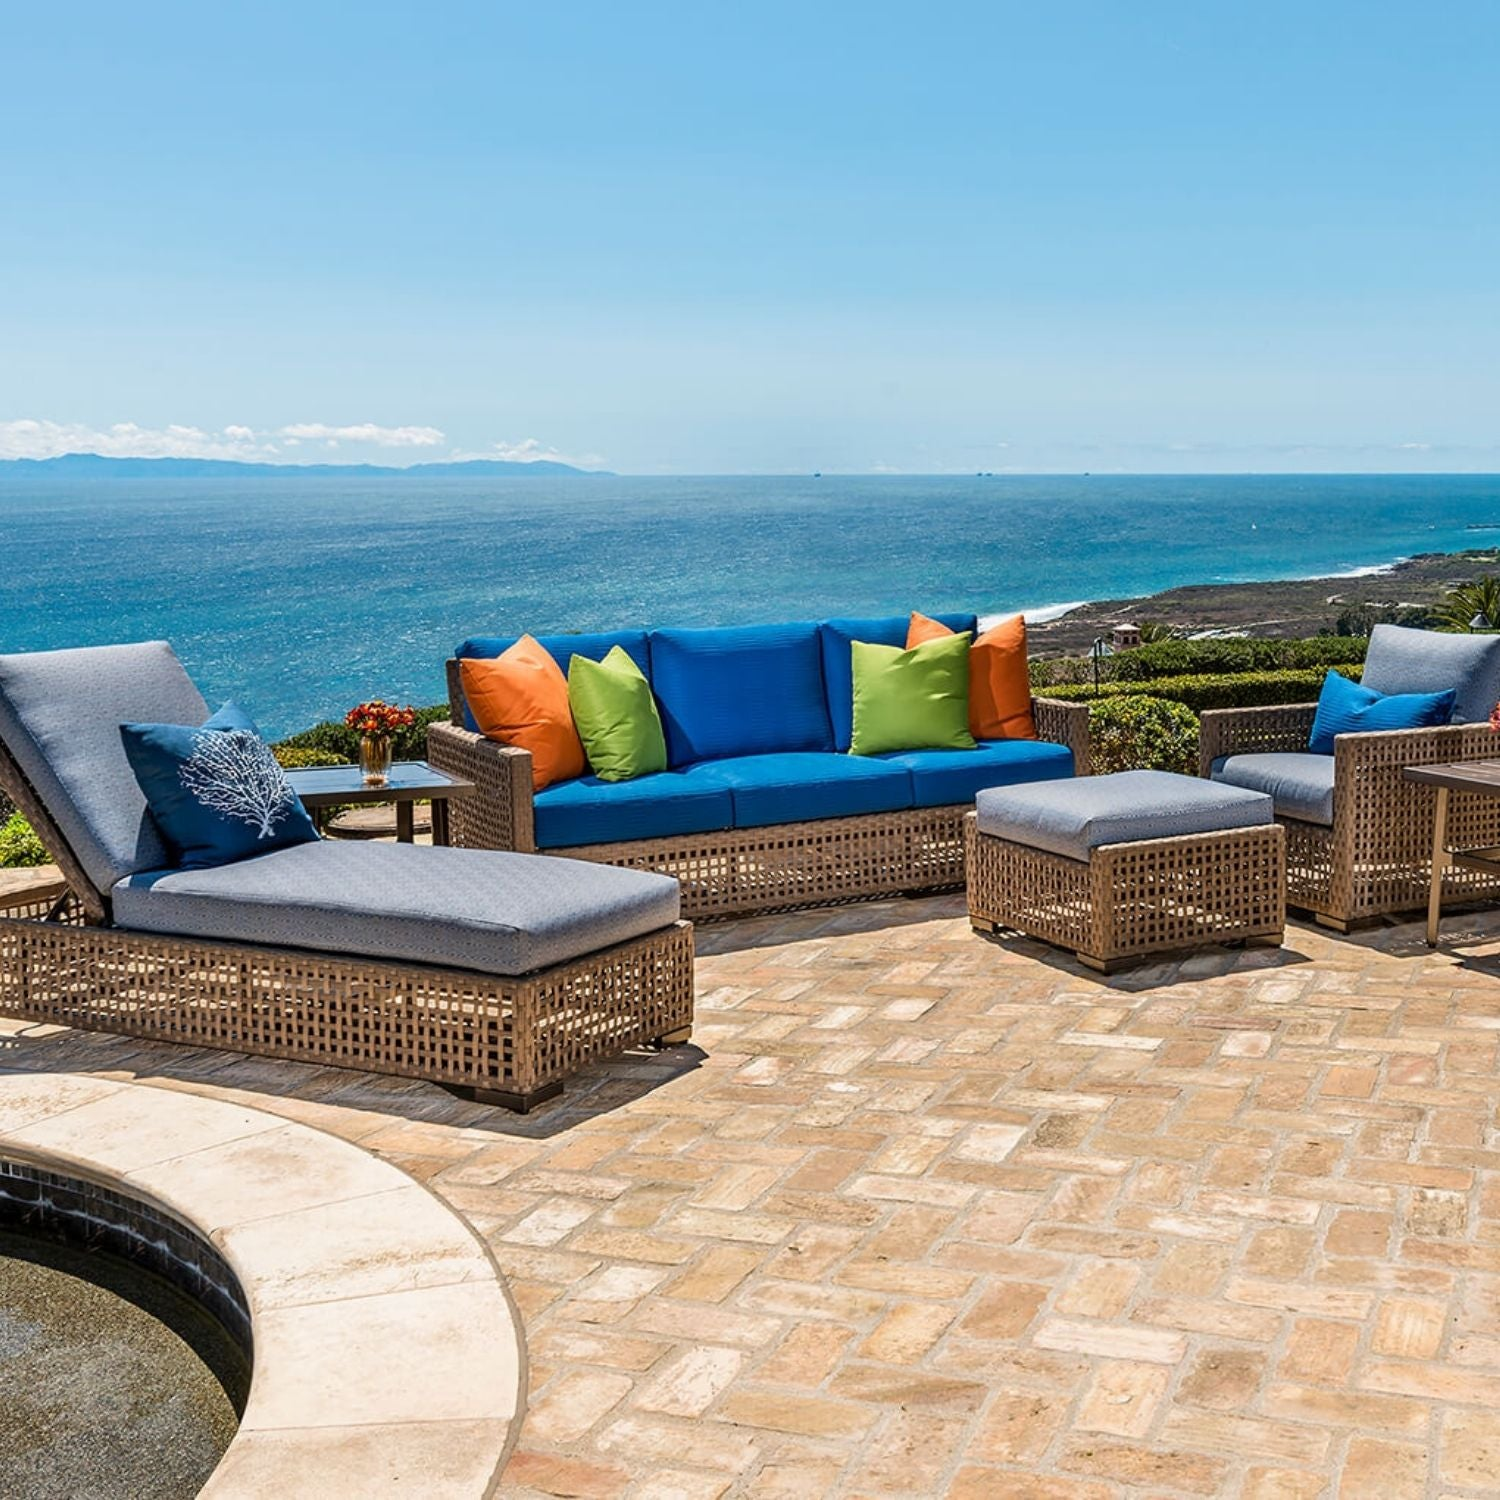 Gensun Barclay Cast Aluminum Outdoor Furniture